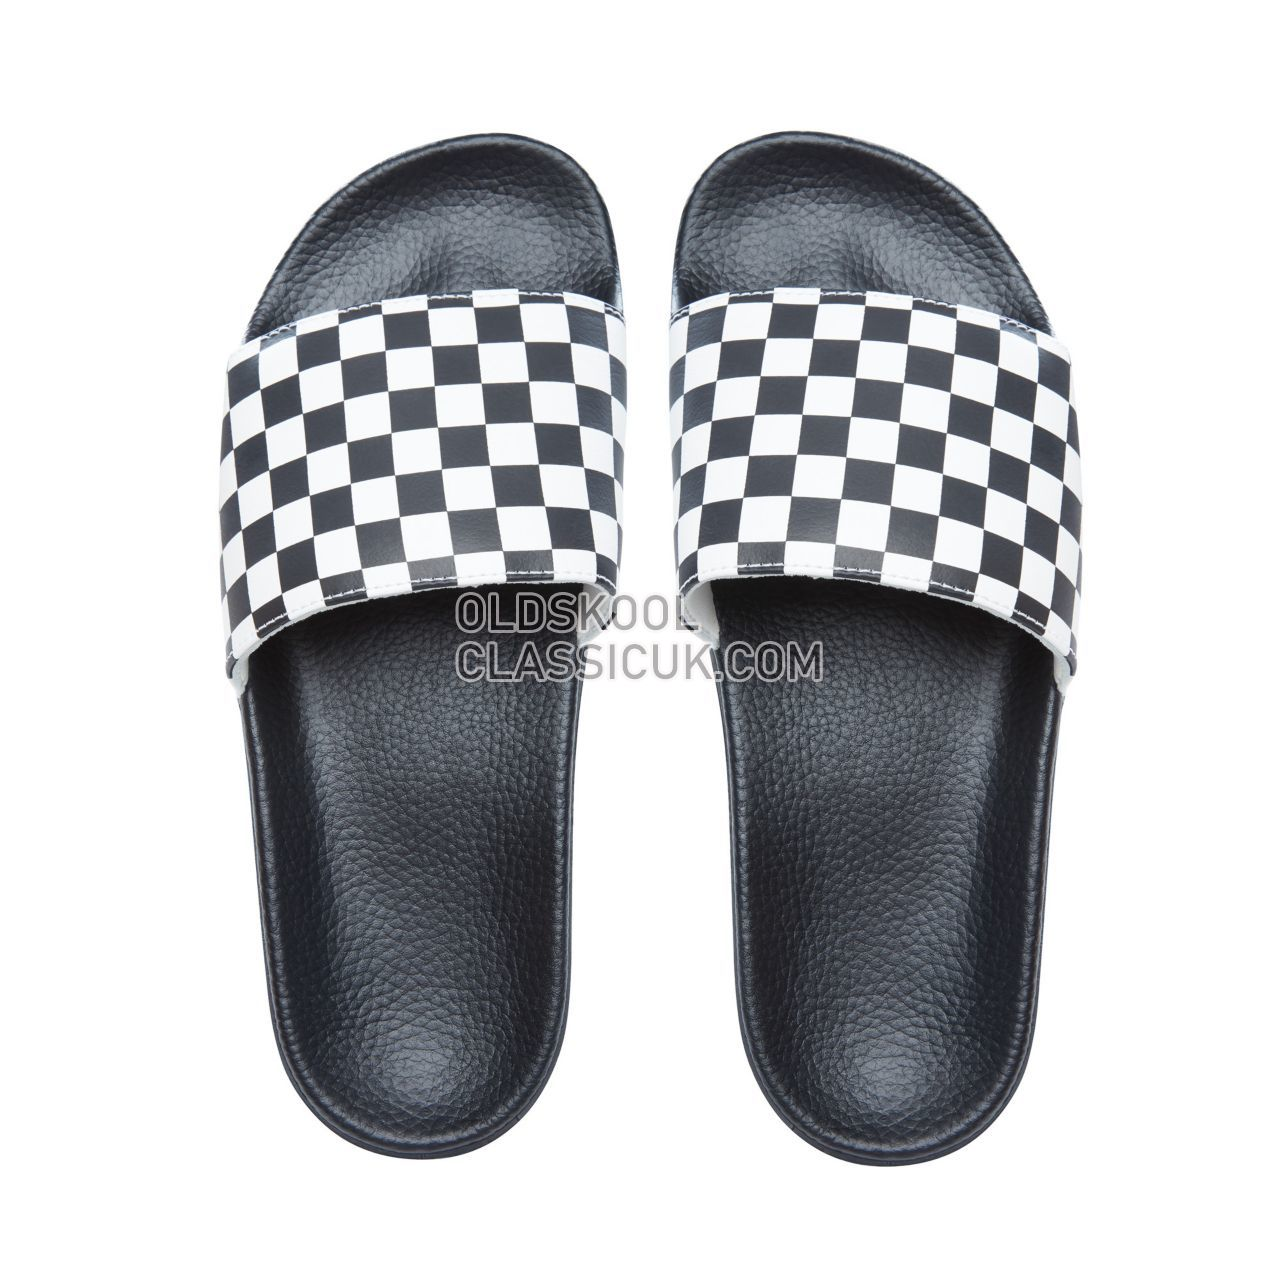 Vans Checkerboard Slide-On Sandals Mens White V4KIIP9 Shoes